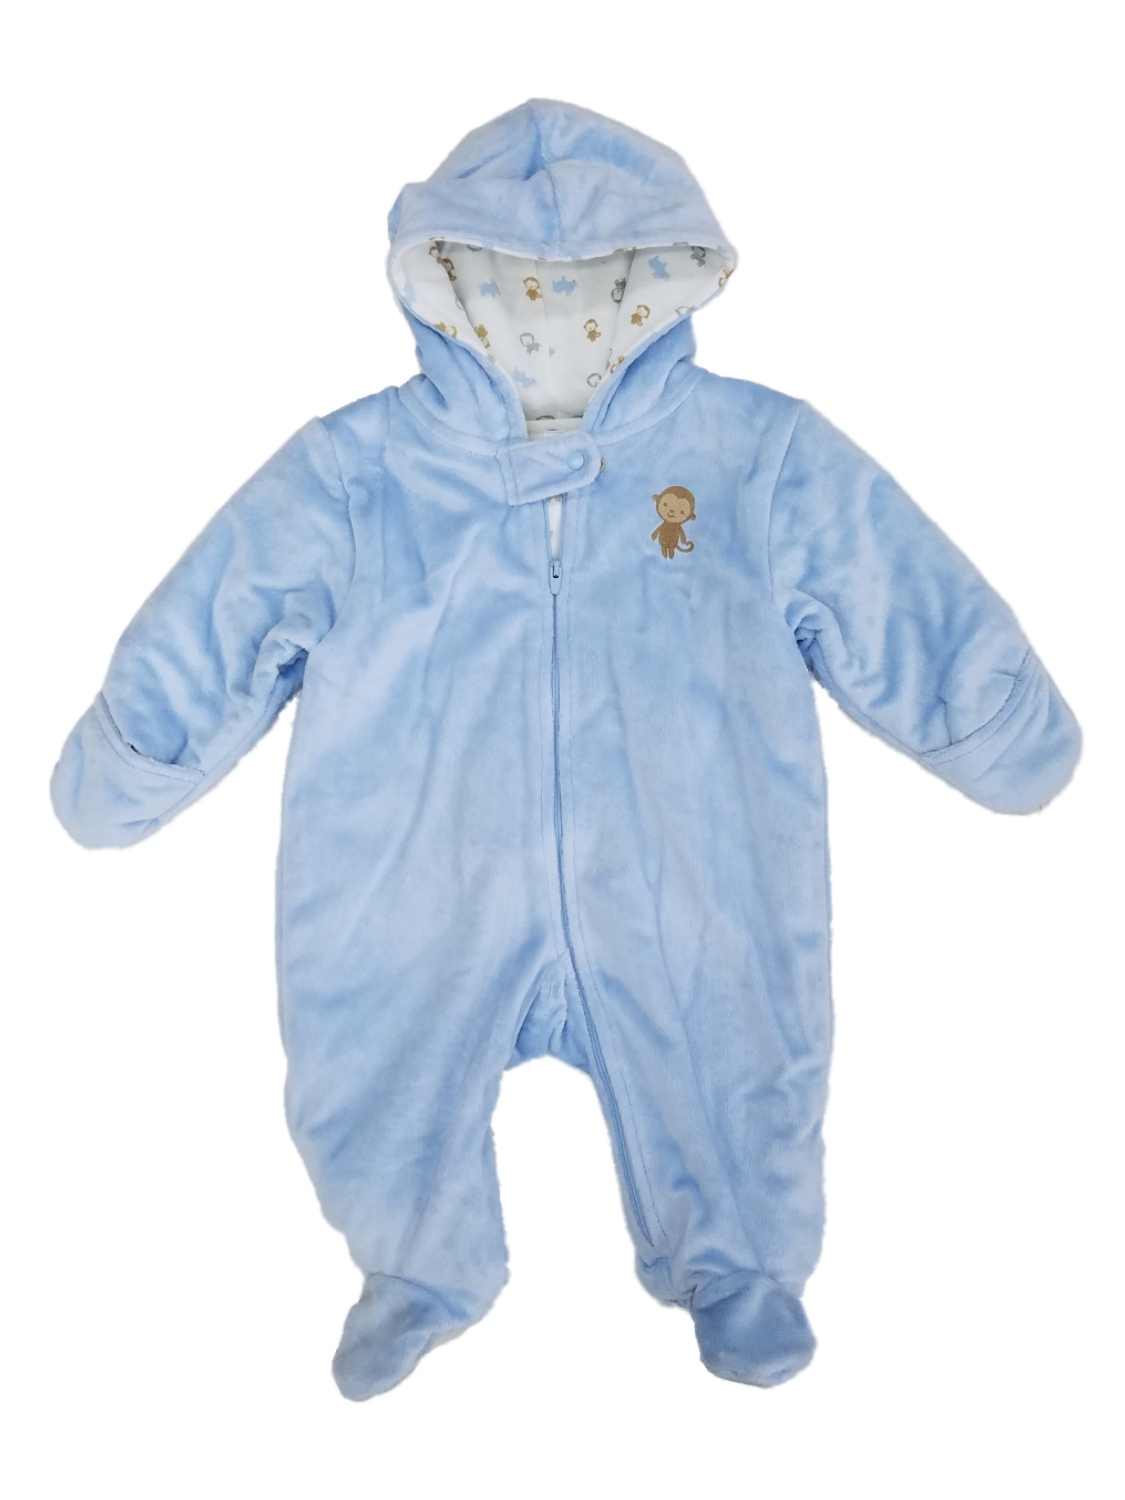 Carters Infant Boys Blue Plush Monkey Pram Baby Bunting Snowsuit